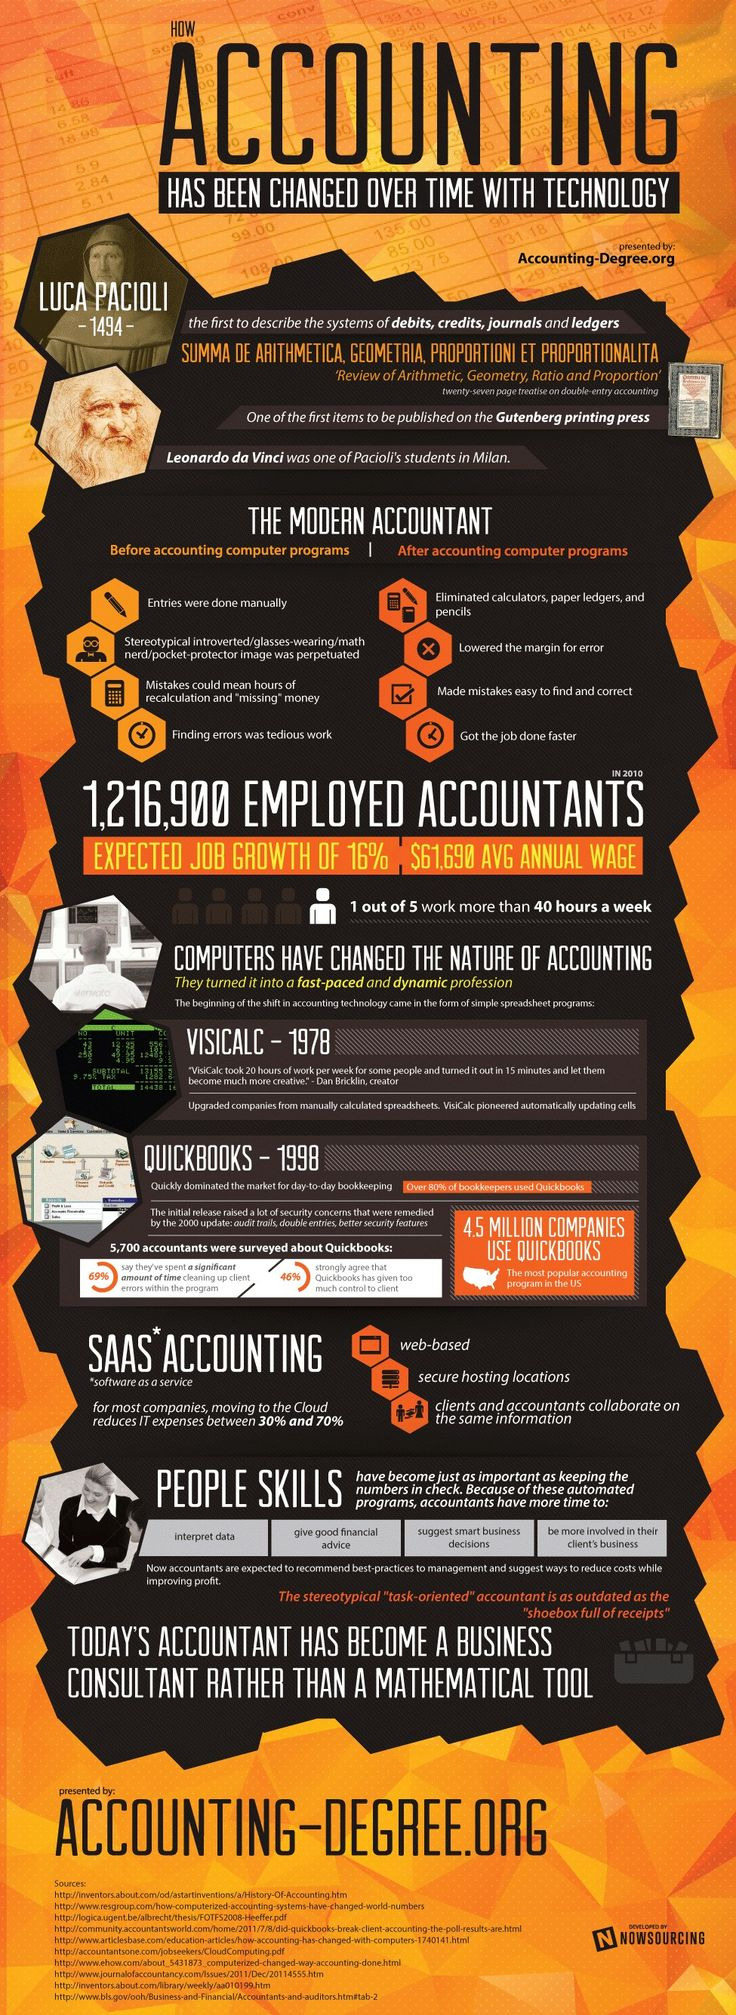 Technology Forever Changed the Accounting Profession Infographic